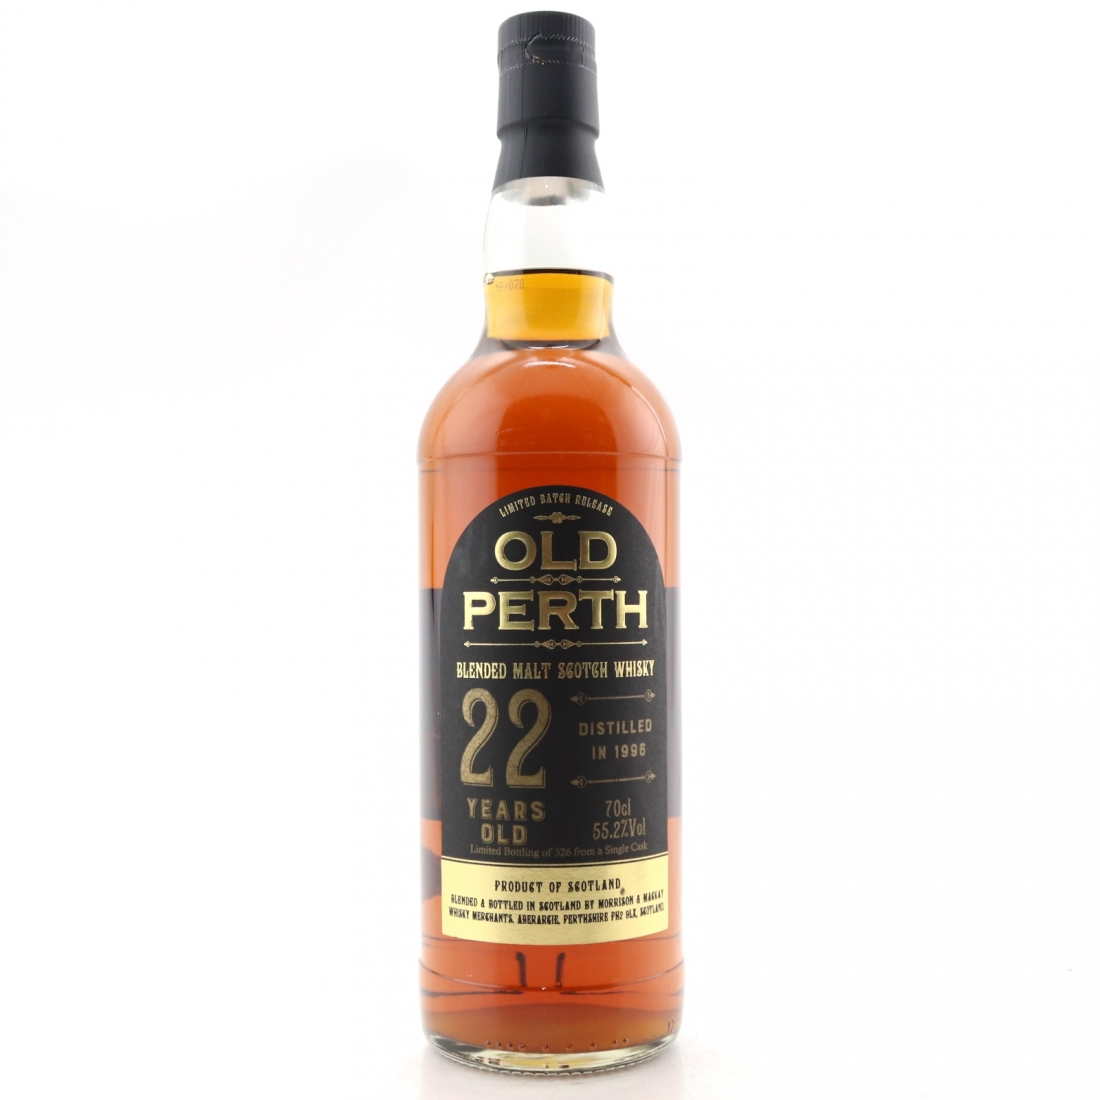 Old Perth 1996 22 Year Old Blended Malt